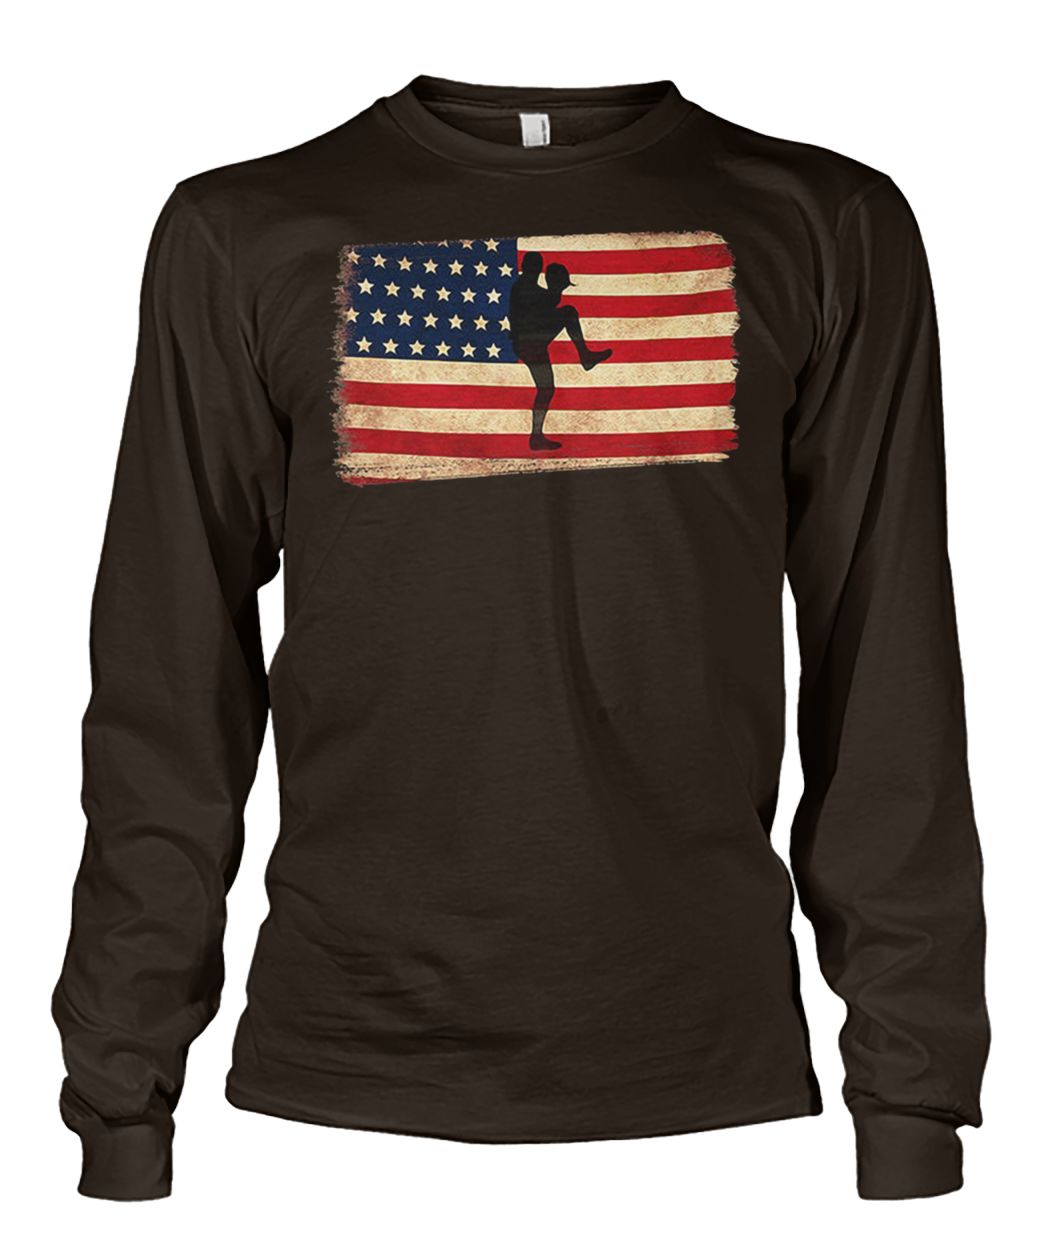 Baseball pitcher throws ball american flag unisex long sleeve